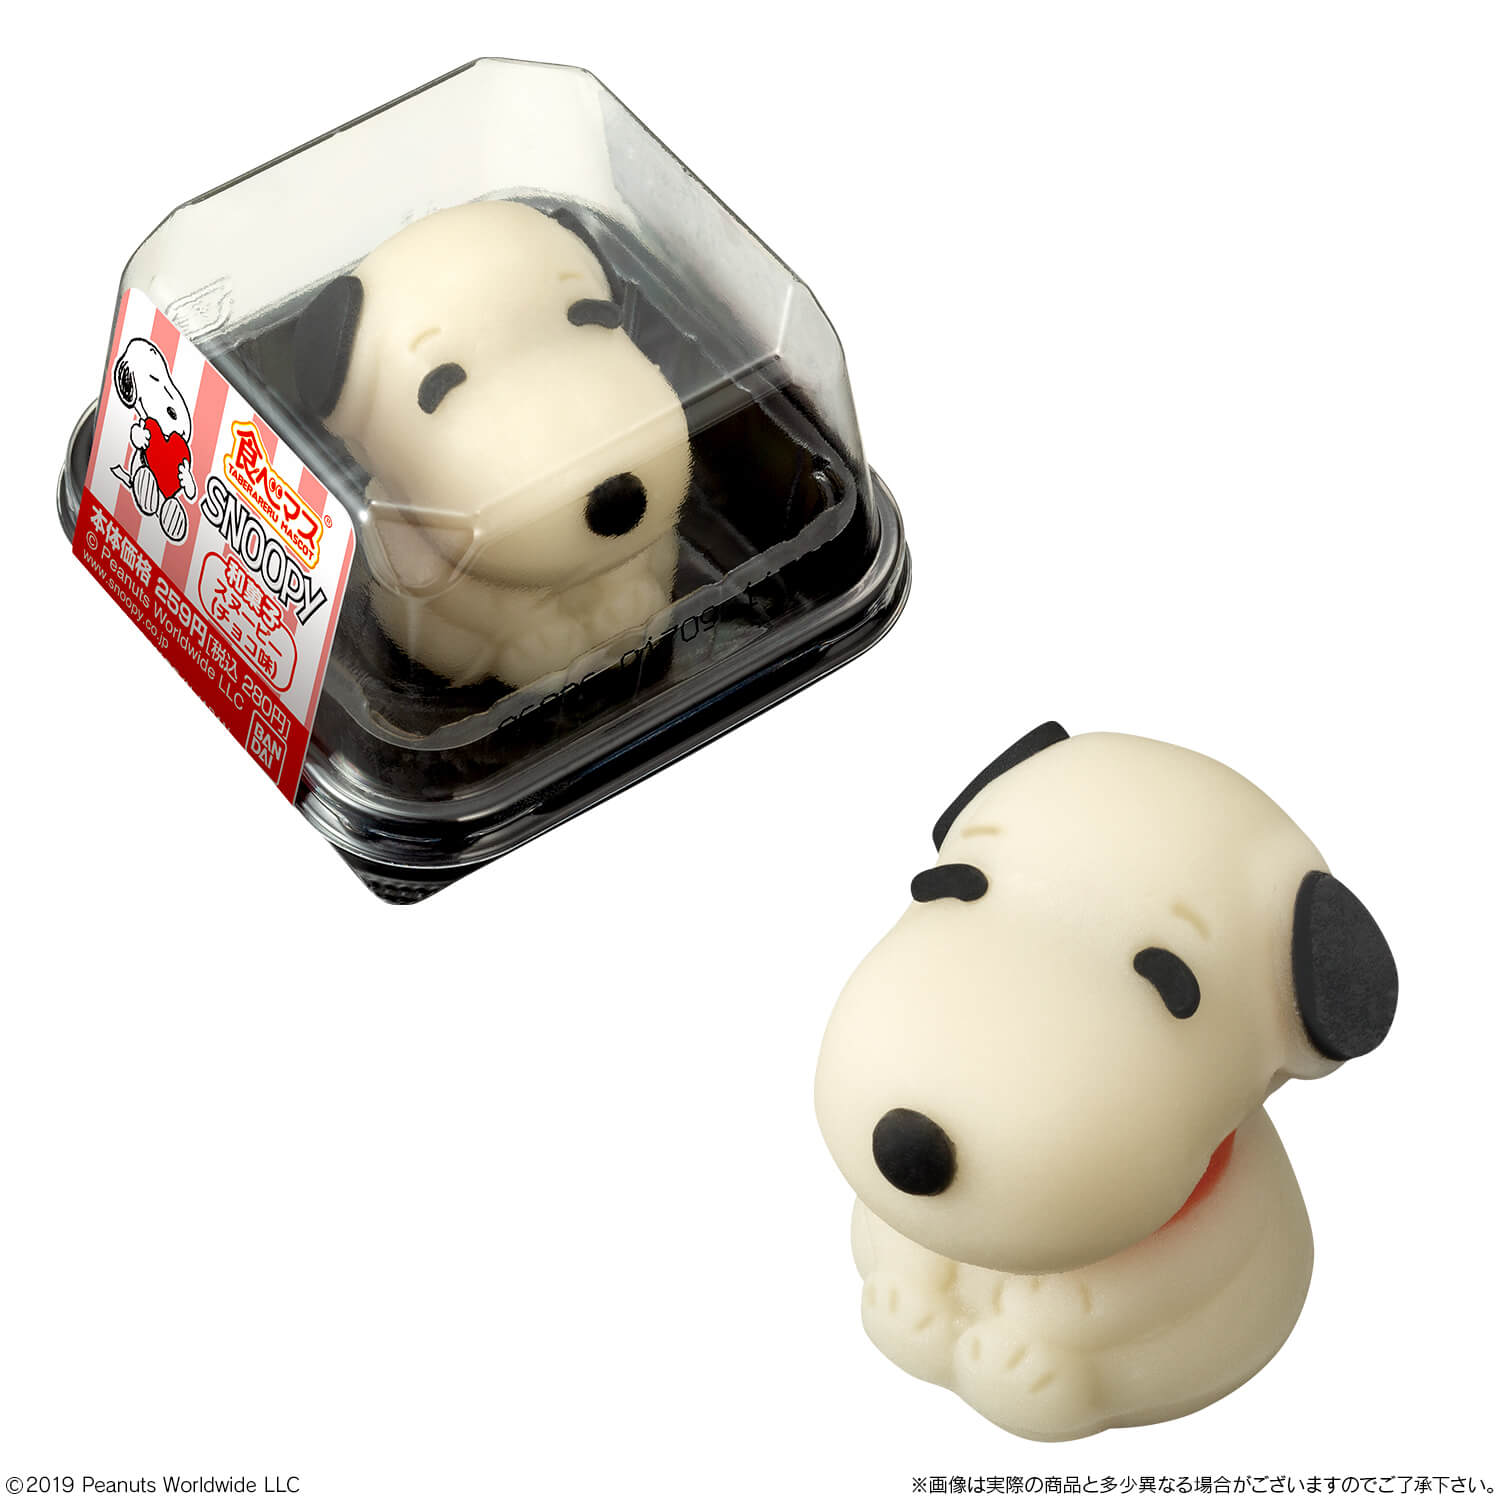 Snoopy, Joe Cool & Charlie Brown Confections by Tabemas Are